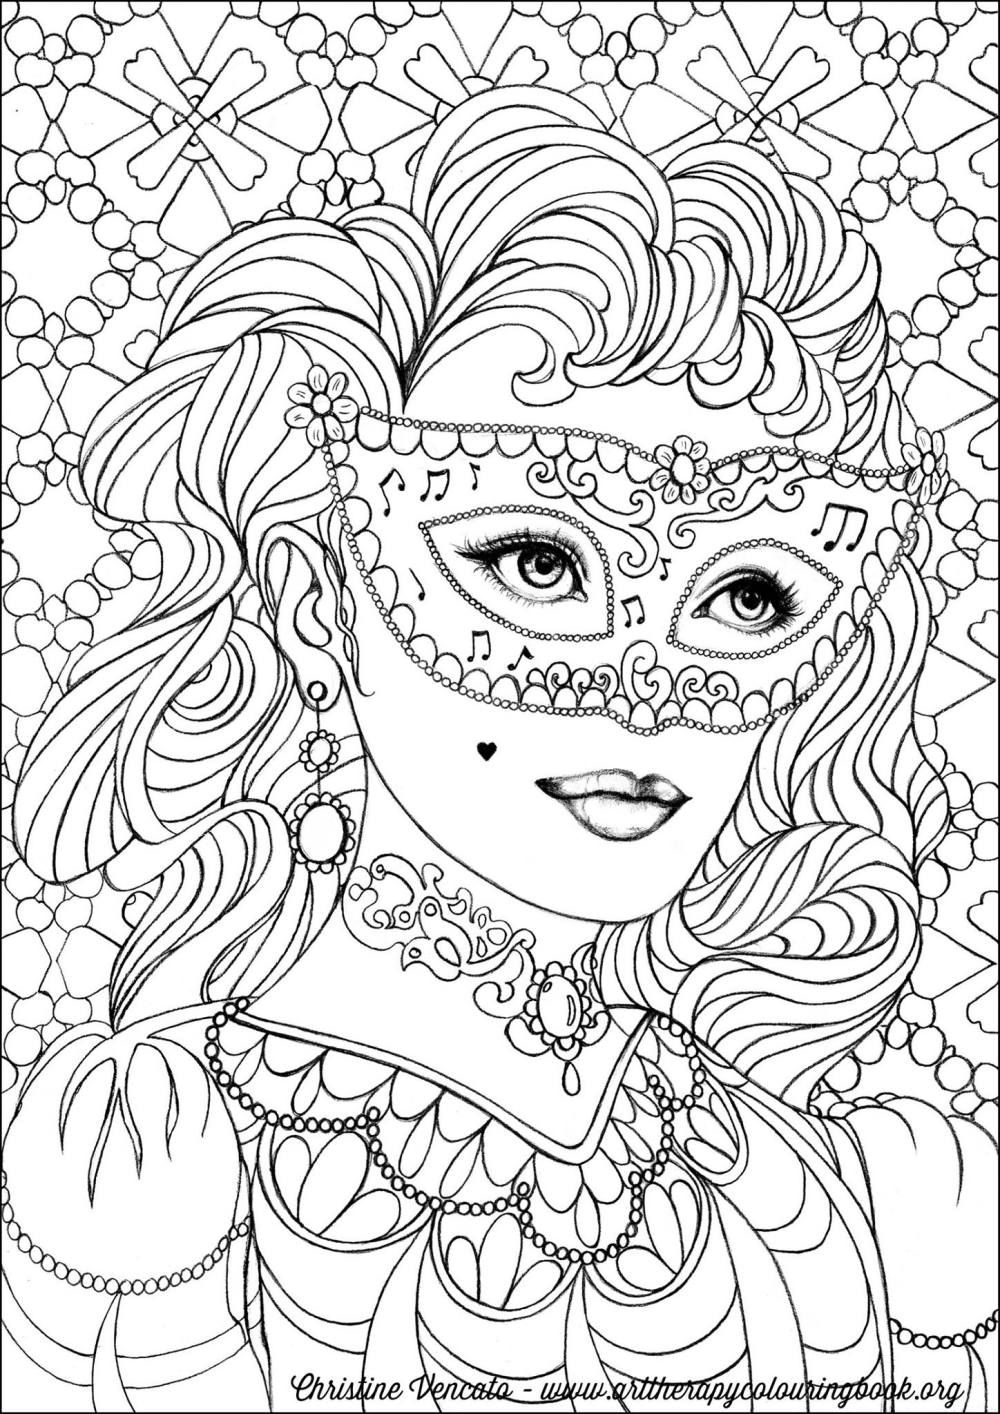 Free coloring page from adult coloring worldwide art by for Therapeutic coloring pages for children